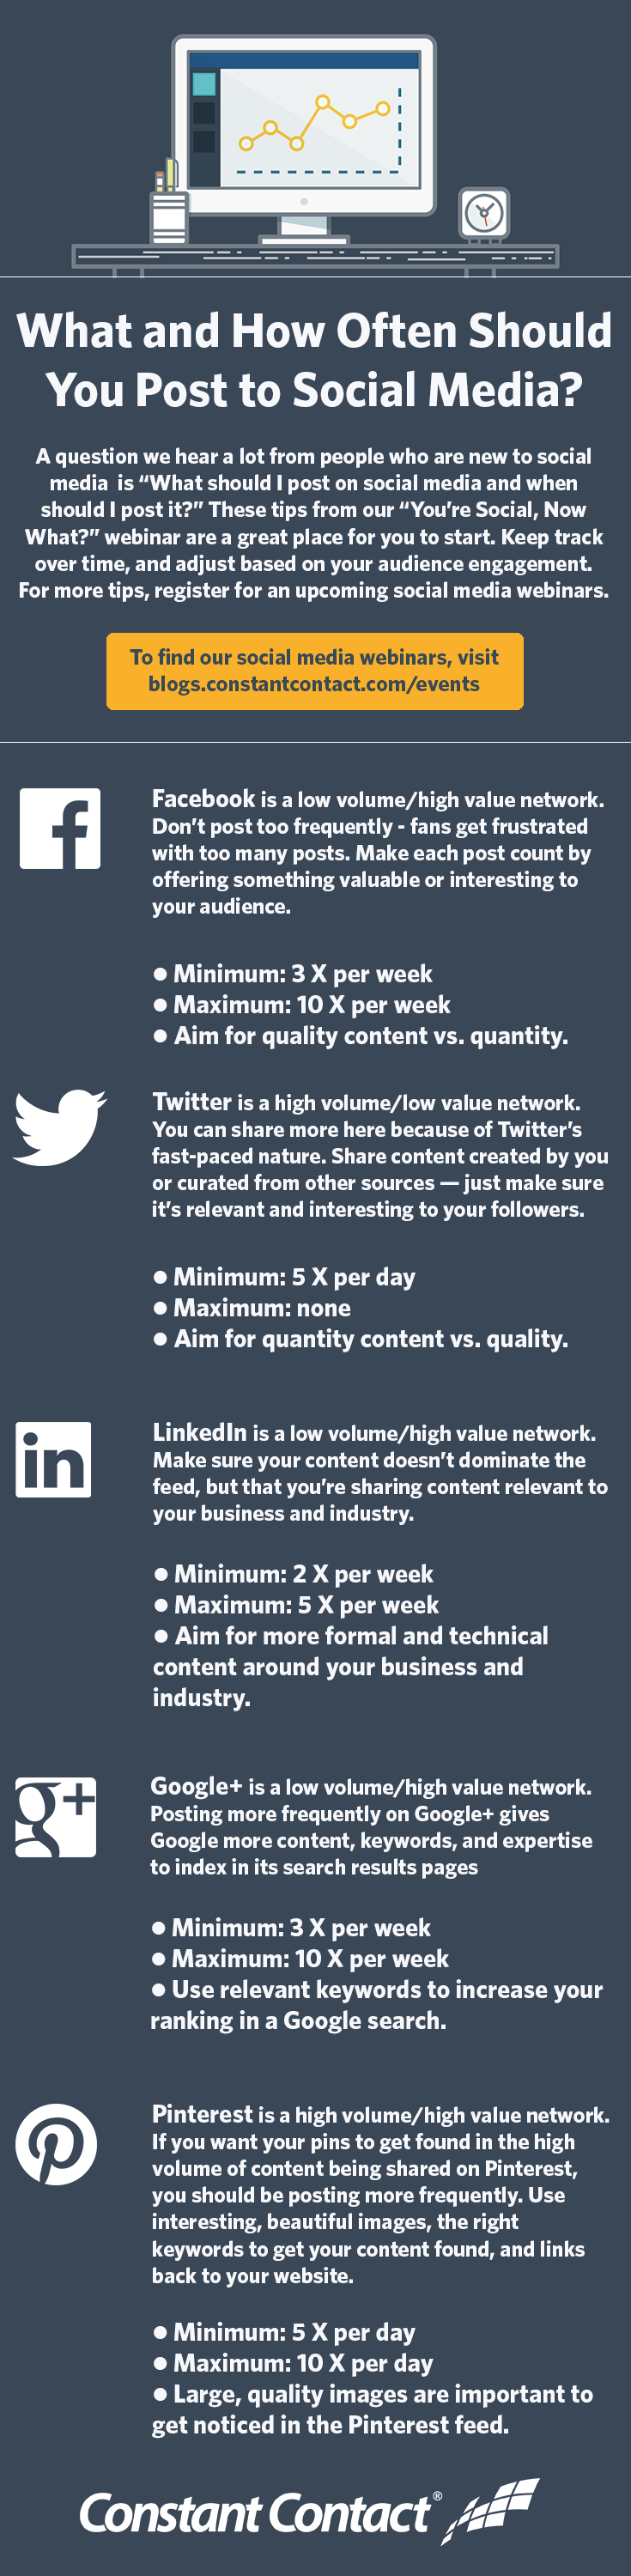 Social-Media-Posting-Frequency-Infographic.png